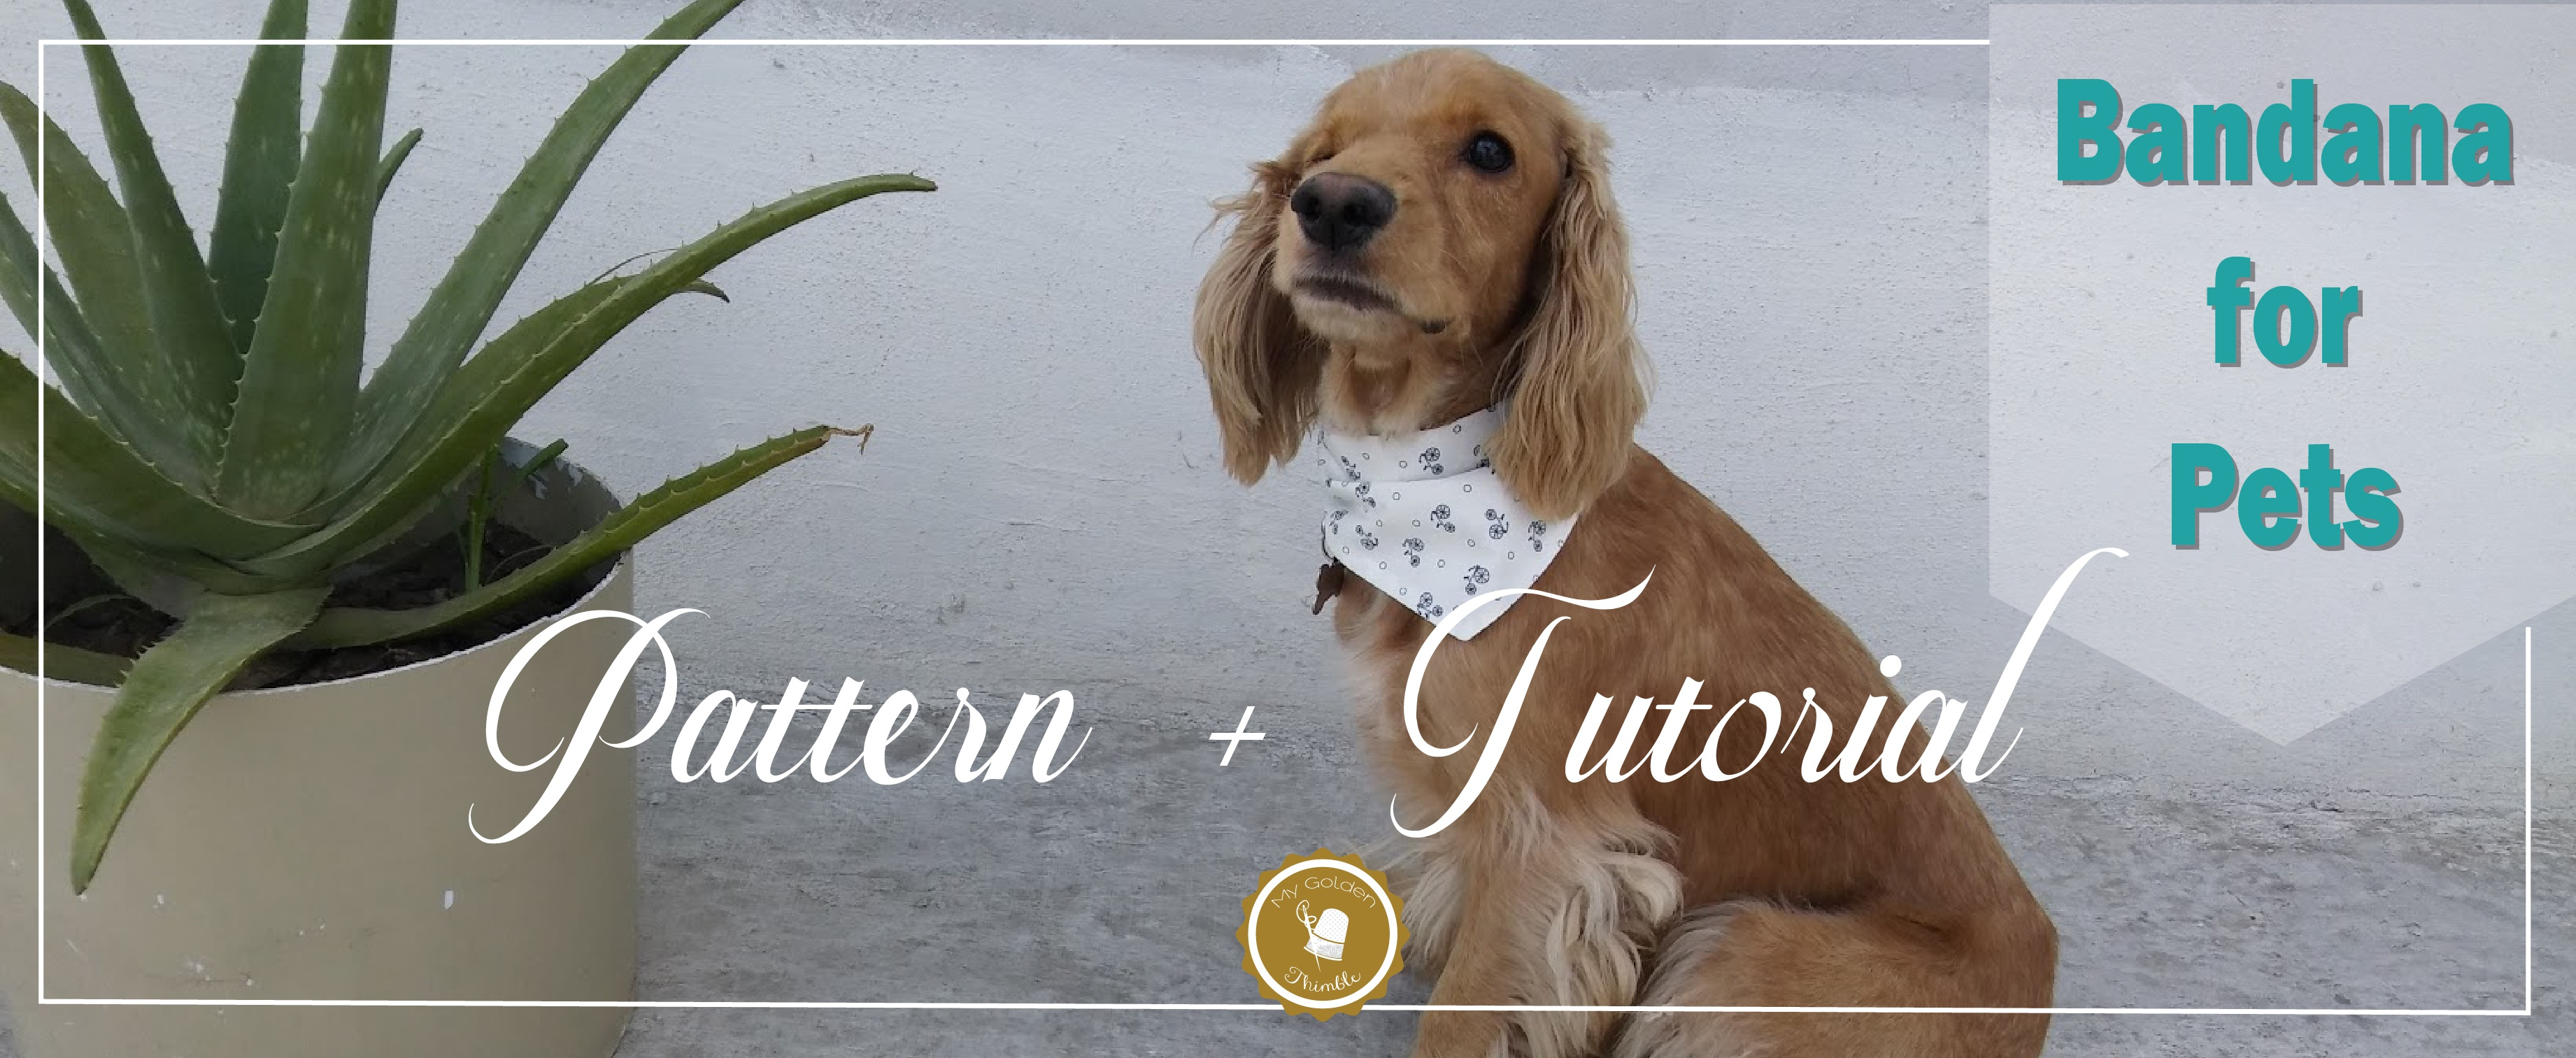 Free Dog Bandana Pattern Diy: For All Sizes! | My Golden Thimble - Dog Sewing Patterns Free Printable